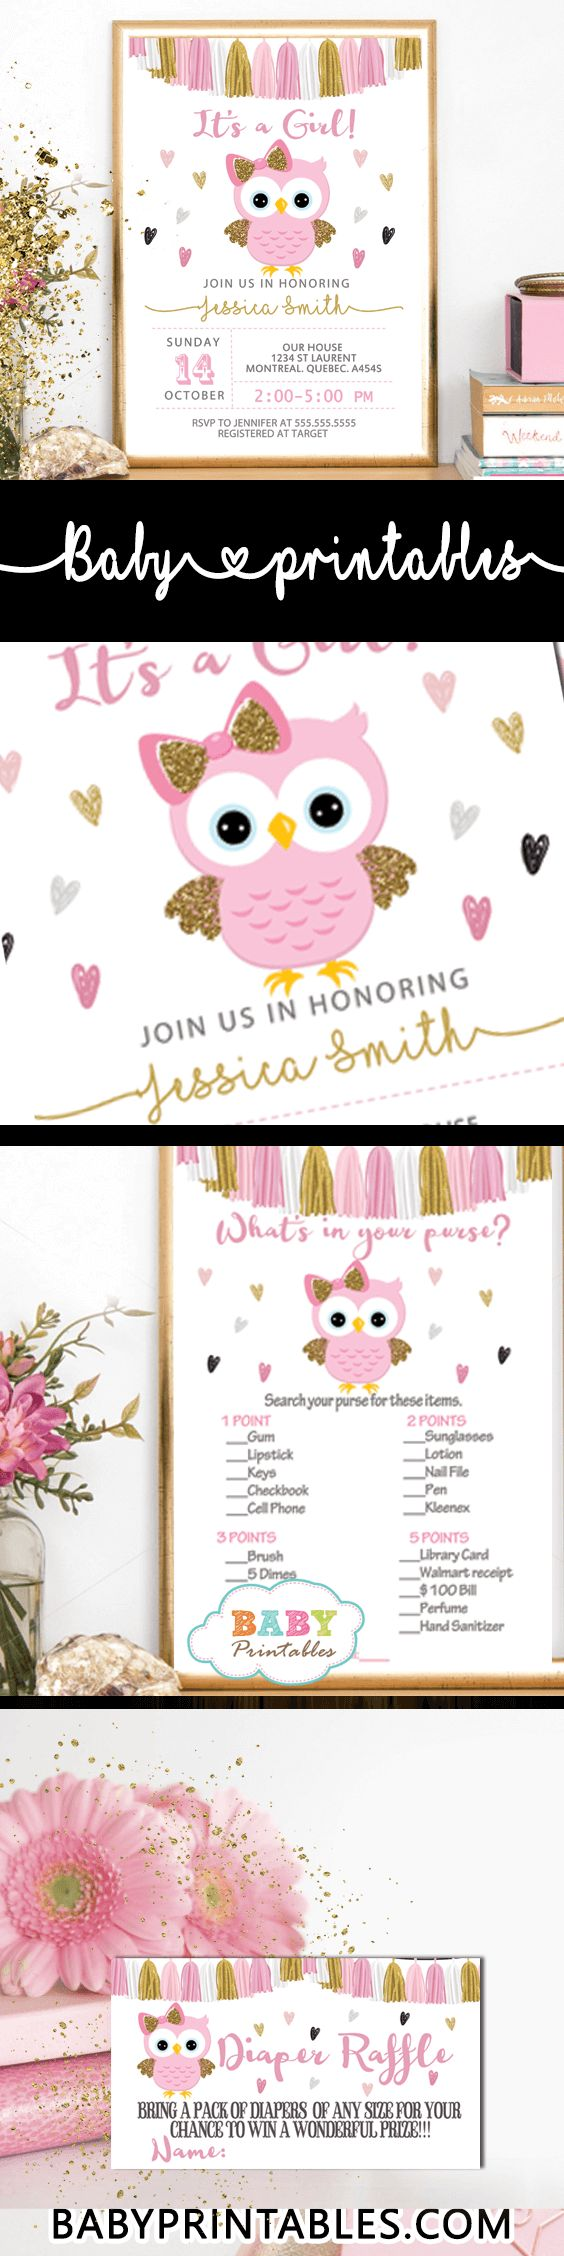 It's a Girl! Celebrate the event with these charming owl baby shower theme featuring an adorable bird in pink and gold glitter against a white backdrop surrounded by multi-colored hearts decorated with a beautiful tassel garland bunting. #babyshower #babyshowerinvitations #babyshowerideas4u #babyshowerparty